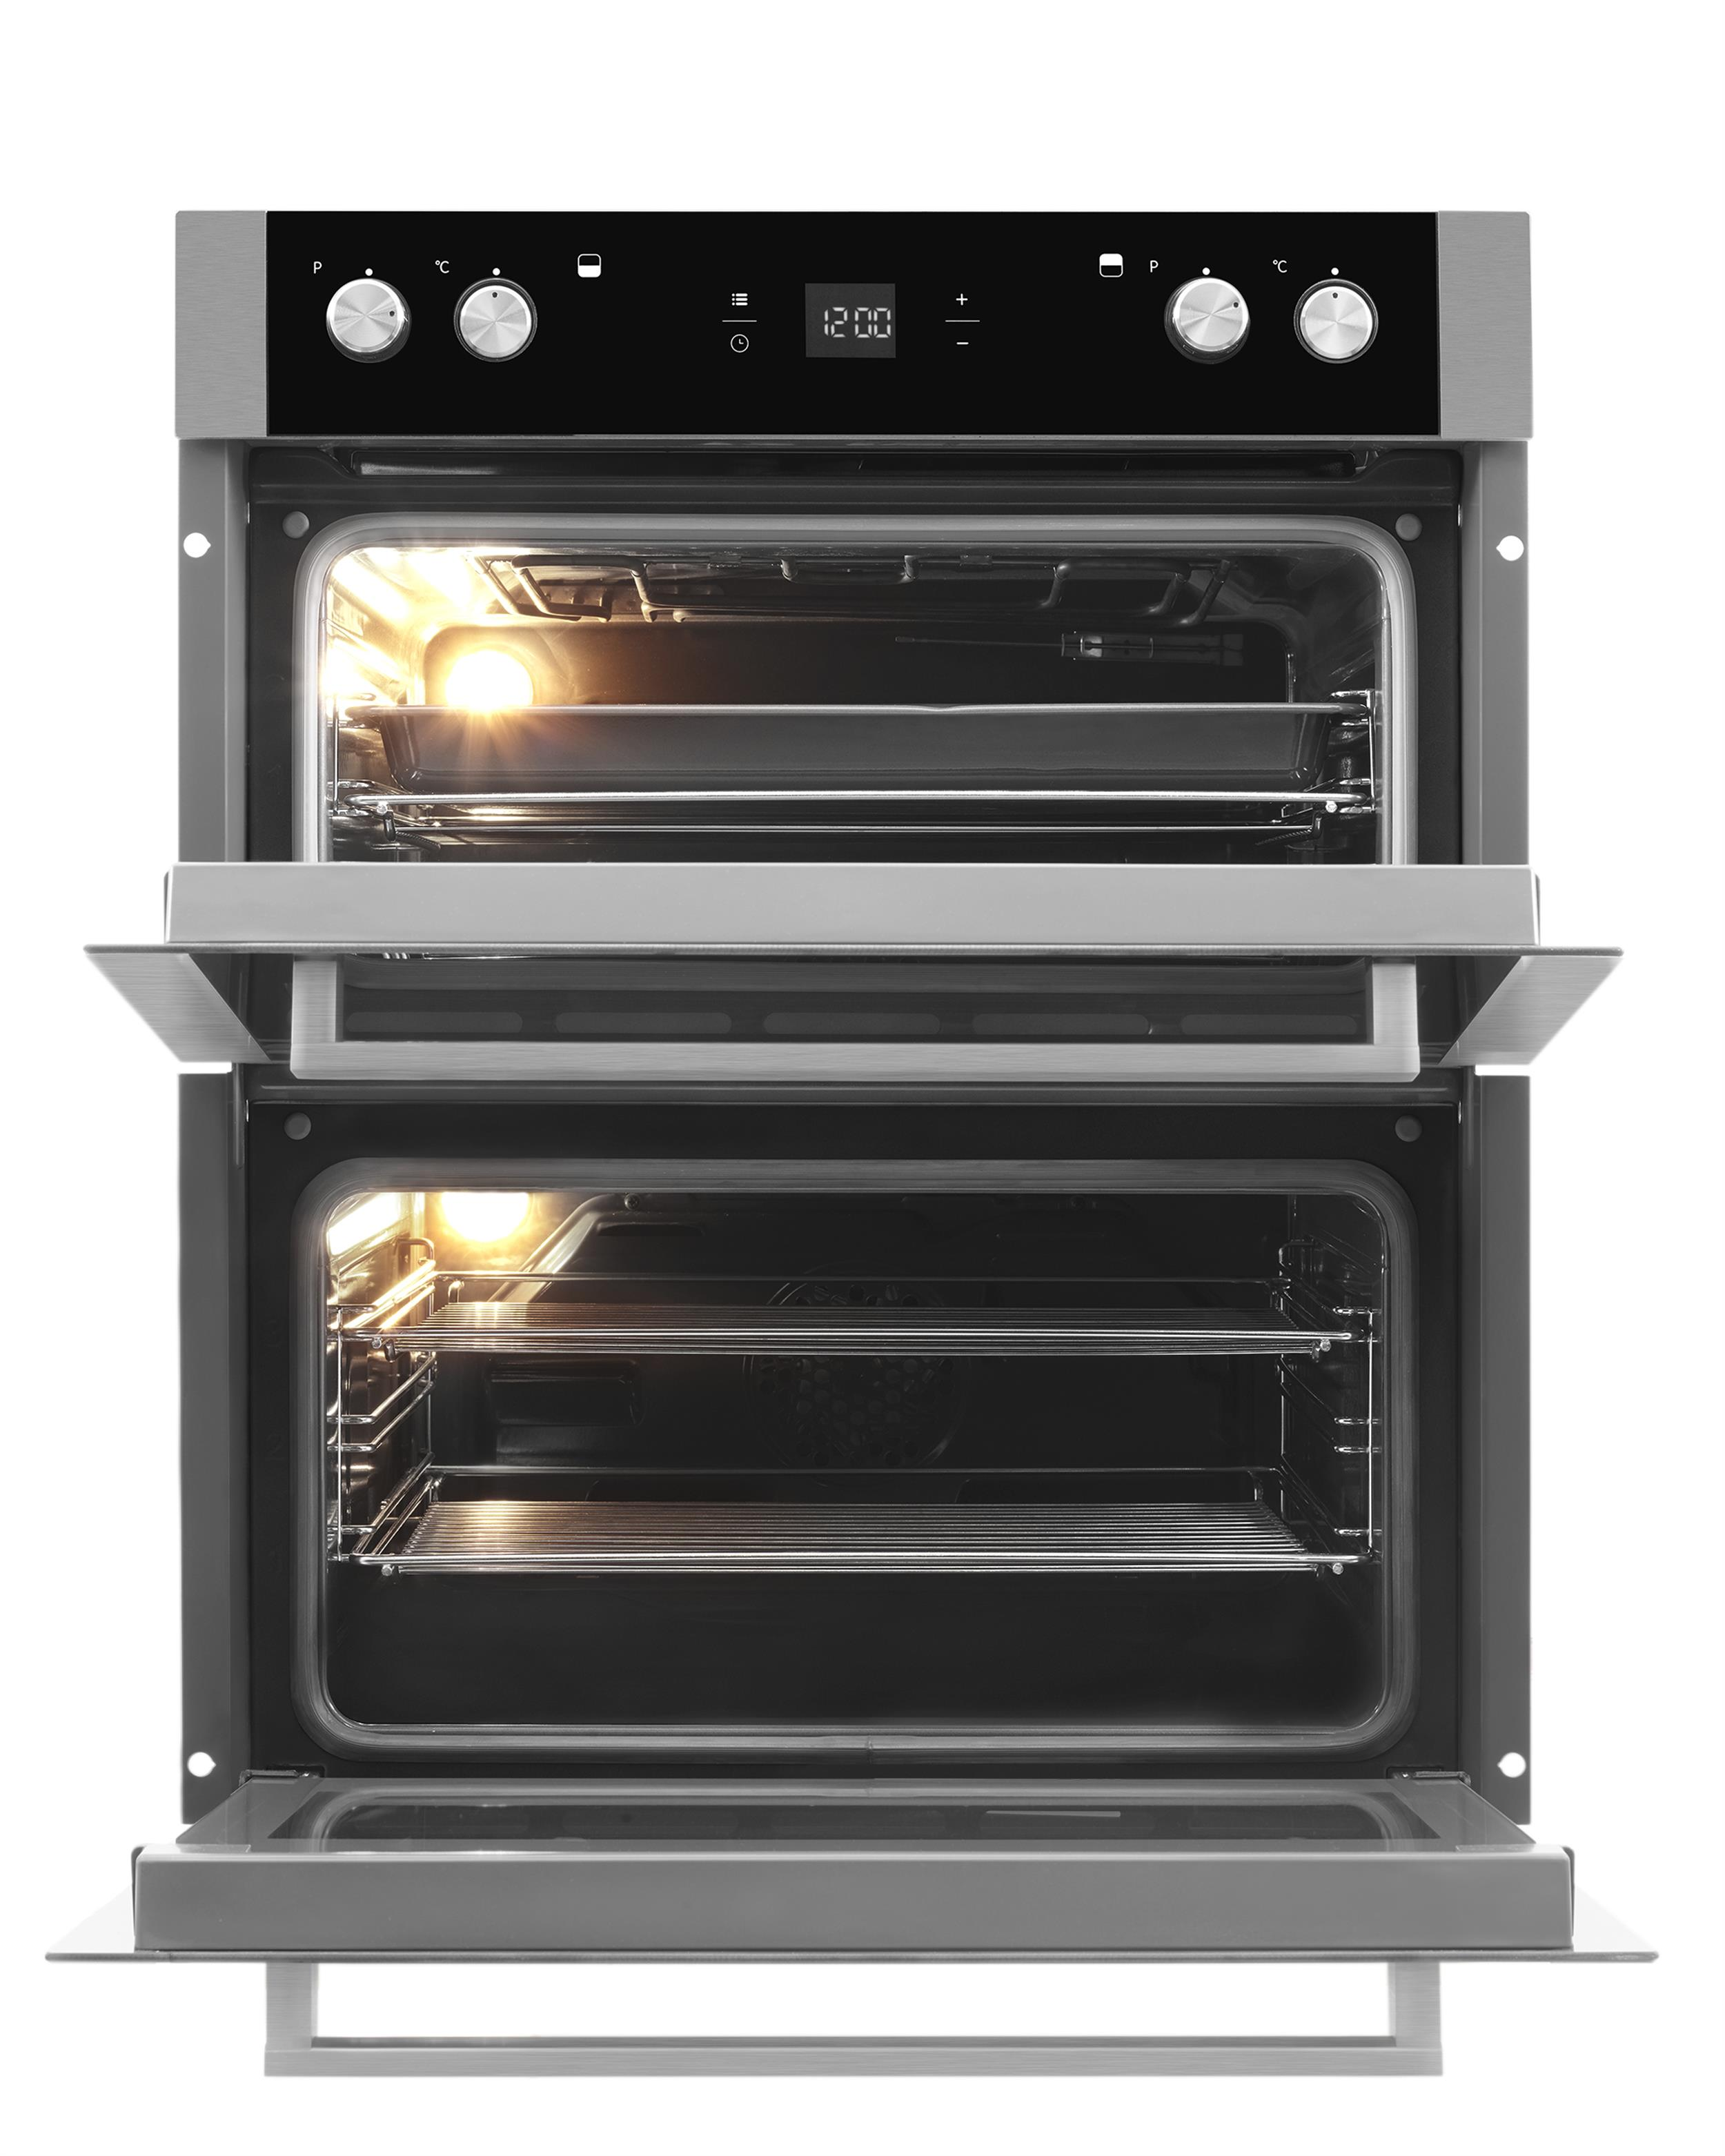 OTN9302 72 Cm Built-in Fan Double Oven